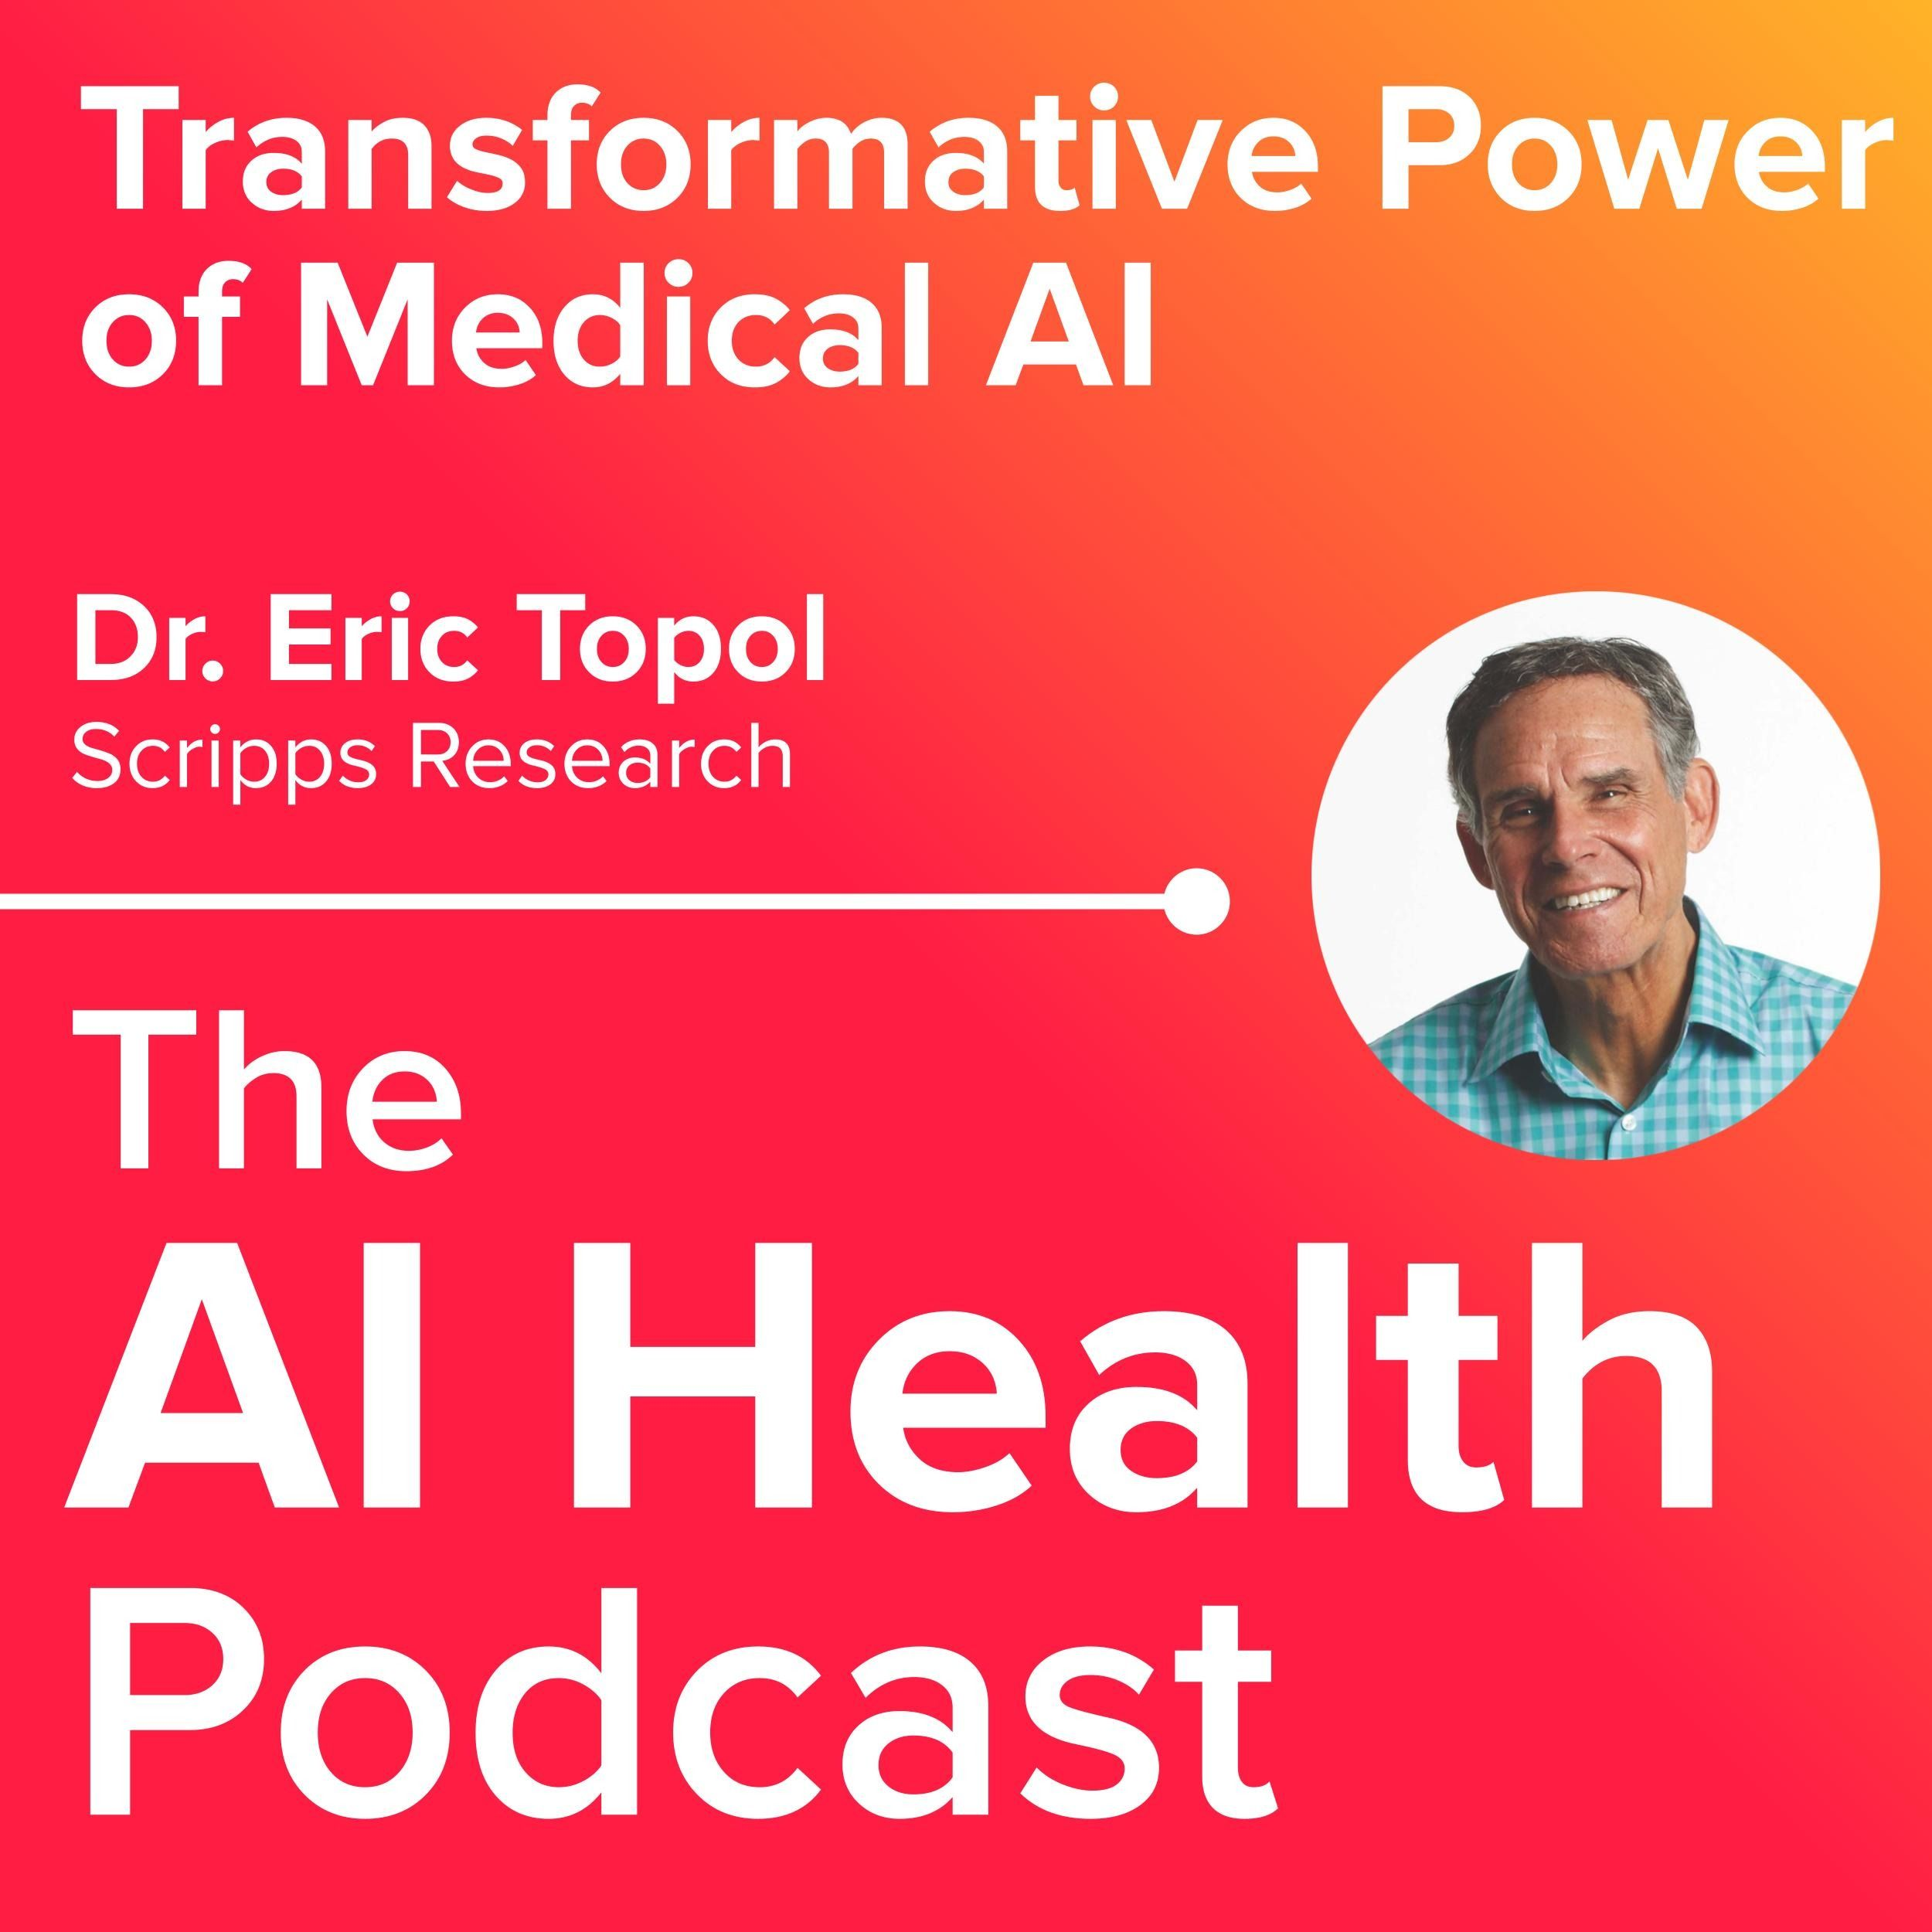 Dr. Eric Topol on the Transformative Power of Medical AI